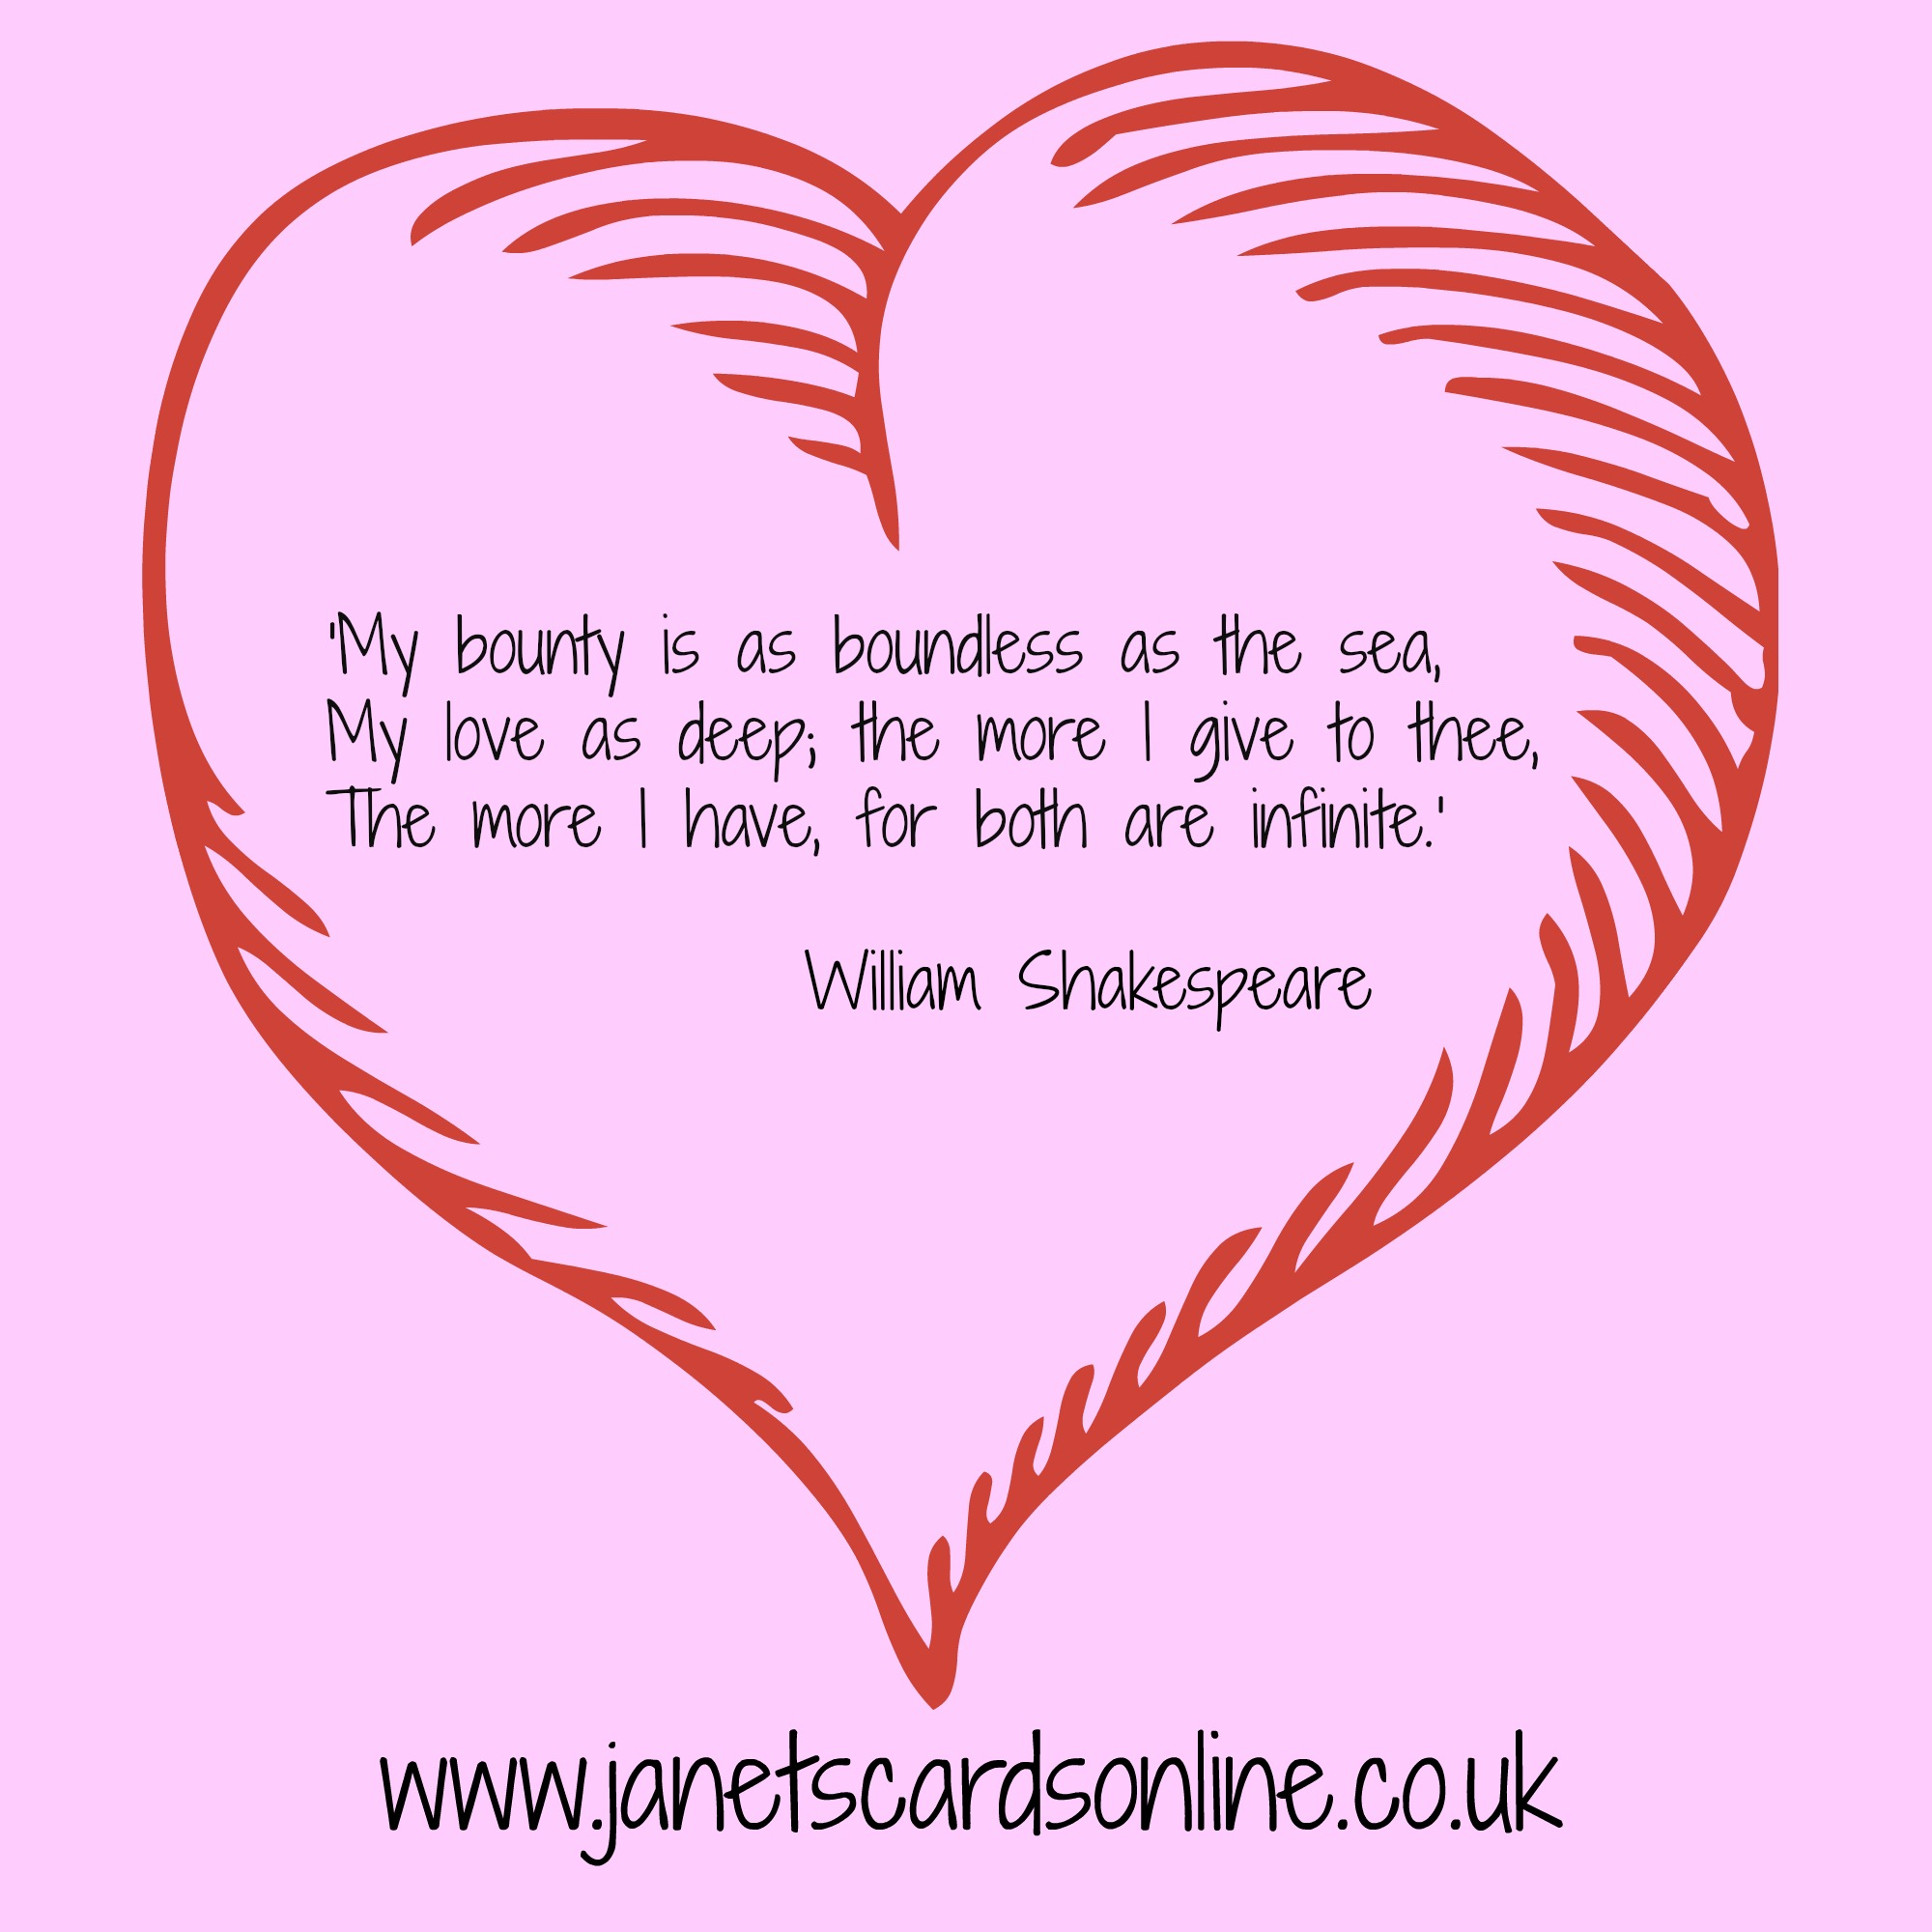 William Shakespeare love quote verse Valentines Day